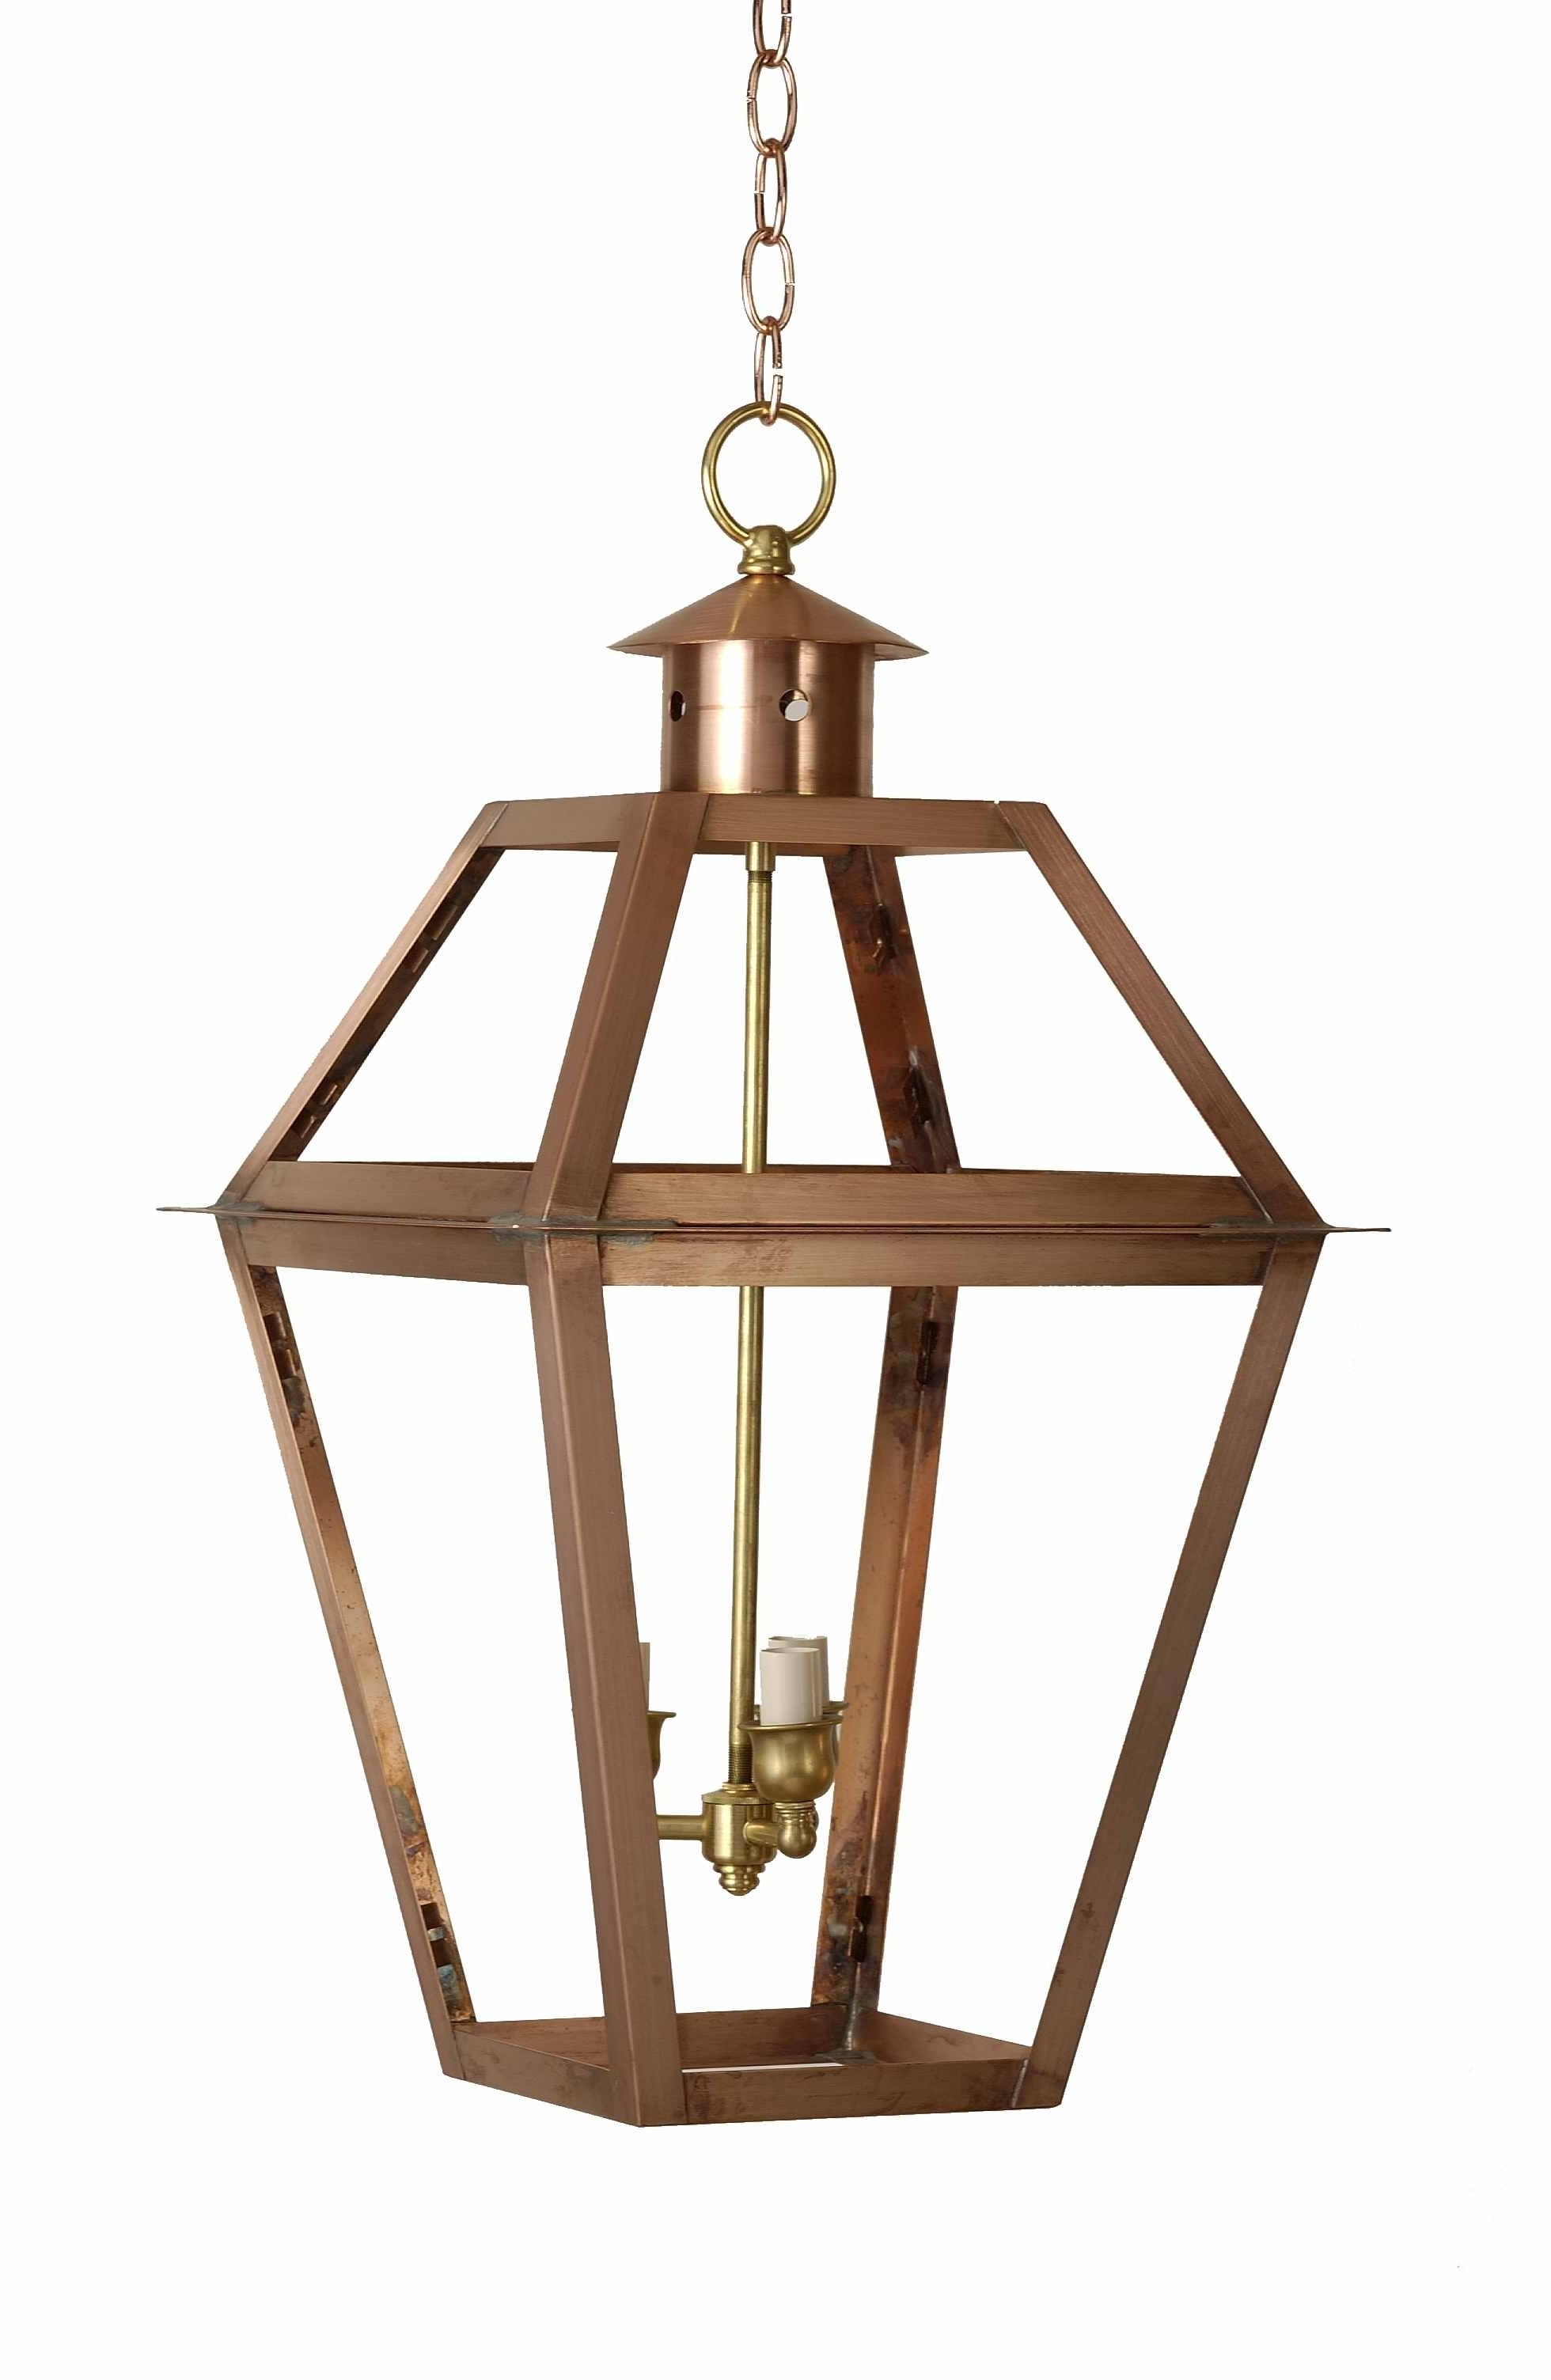 Outdoor Hanging Lanterns For Well Known Charleston Chain Mount Outdoor Lantern – Hanging Lanterns – Outdoor (View 20 of 20)